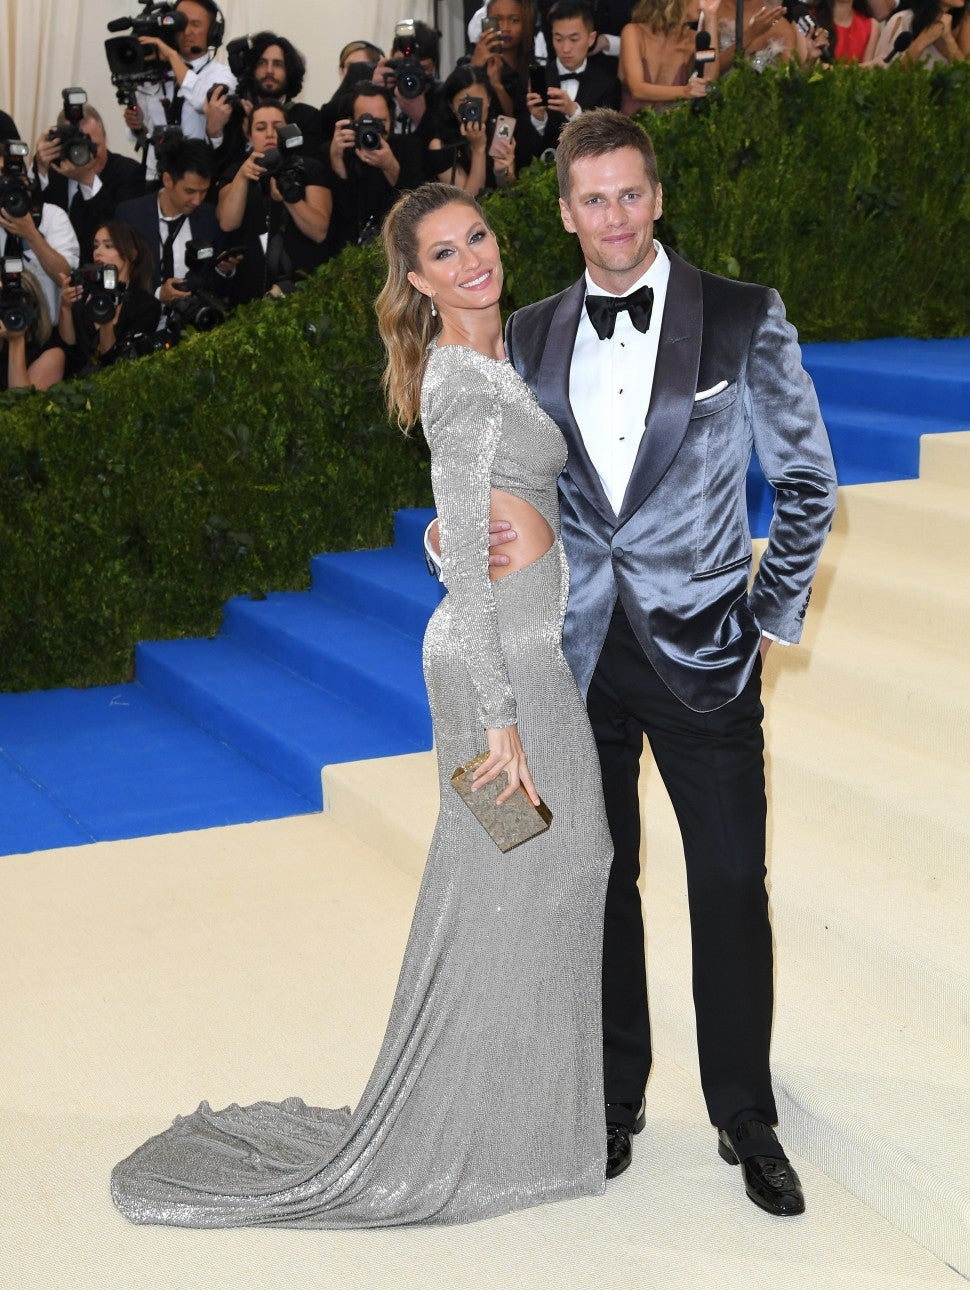 Gisele Bundchen and Tom Brady attend the 'Rei Kawakubo/Comme des Garcons: Art Of The In-Between' Costume Institute Gala at Metropolitan Museum of Art on May 1, 2017 in New York City.